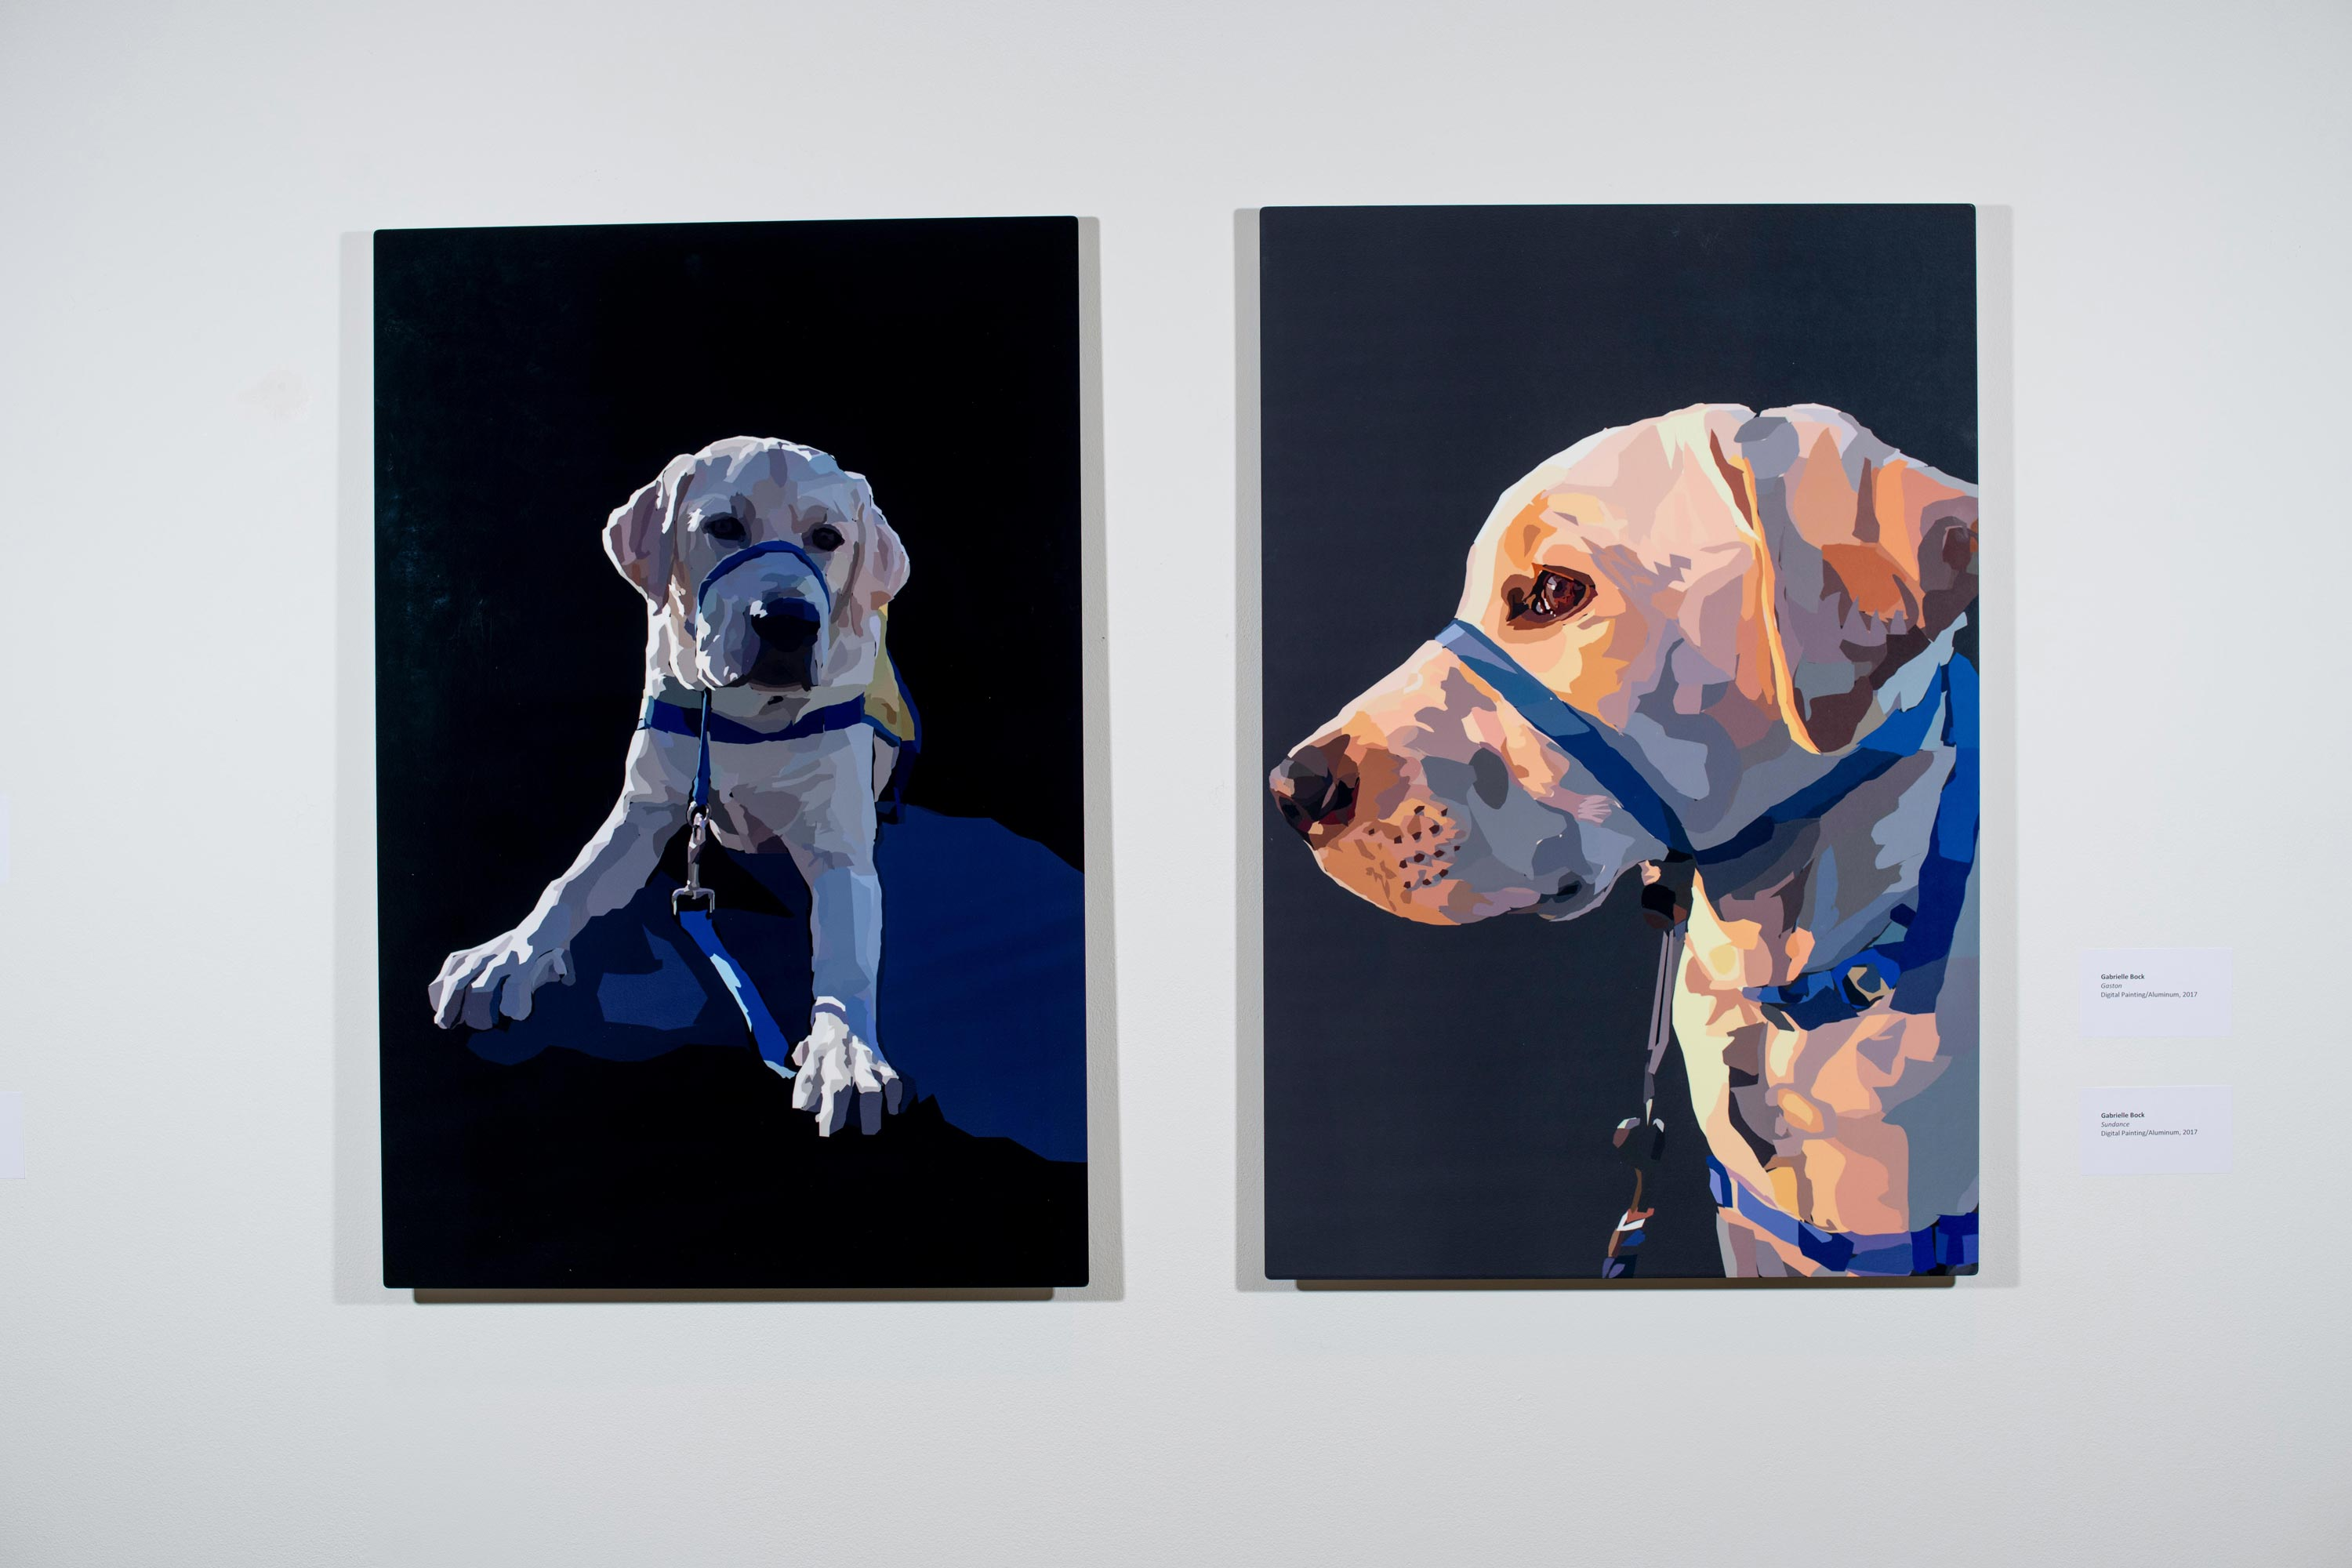 (from left to right) Gaston by Gabrielle Bock, Sundance by Gabrielle Bock [Digital Painting/Aluminum, 2017]